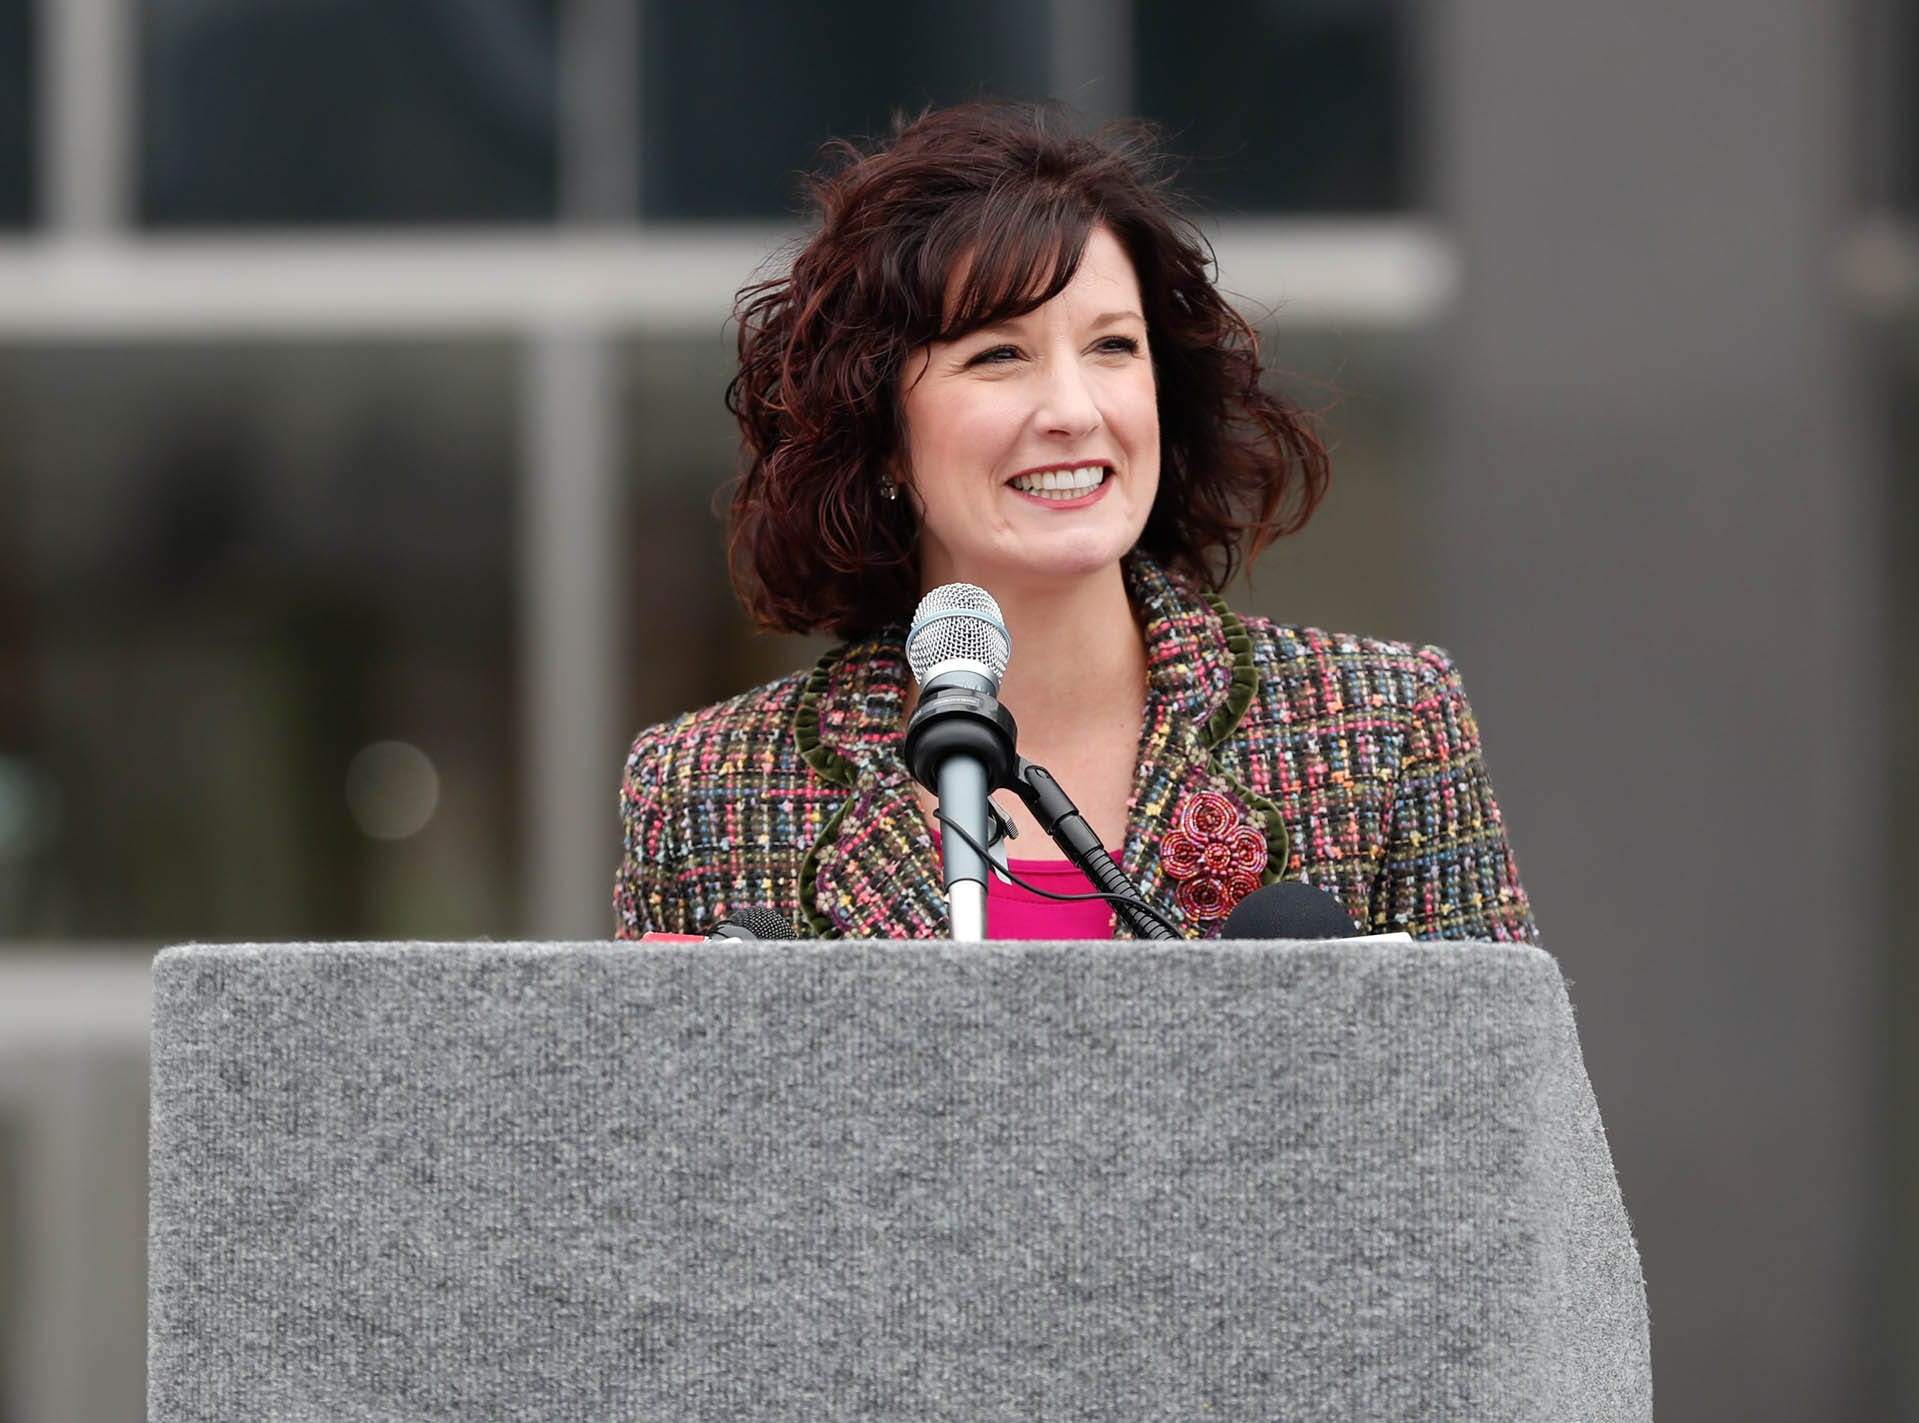 Director of the Department of Metropolitan Development, ​Emily Mack, gives remarks during the reopening and dedication of Richard G. Lugar Plaza at the City-County Building in Indianapolis on Thursday, Oct. 11, 2018.